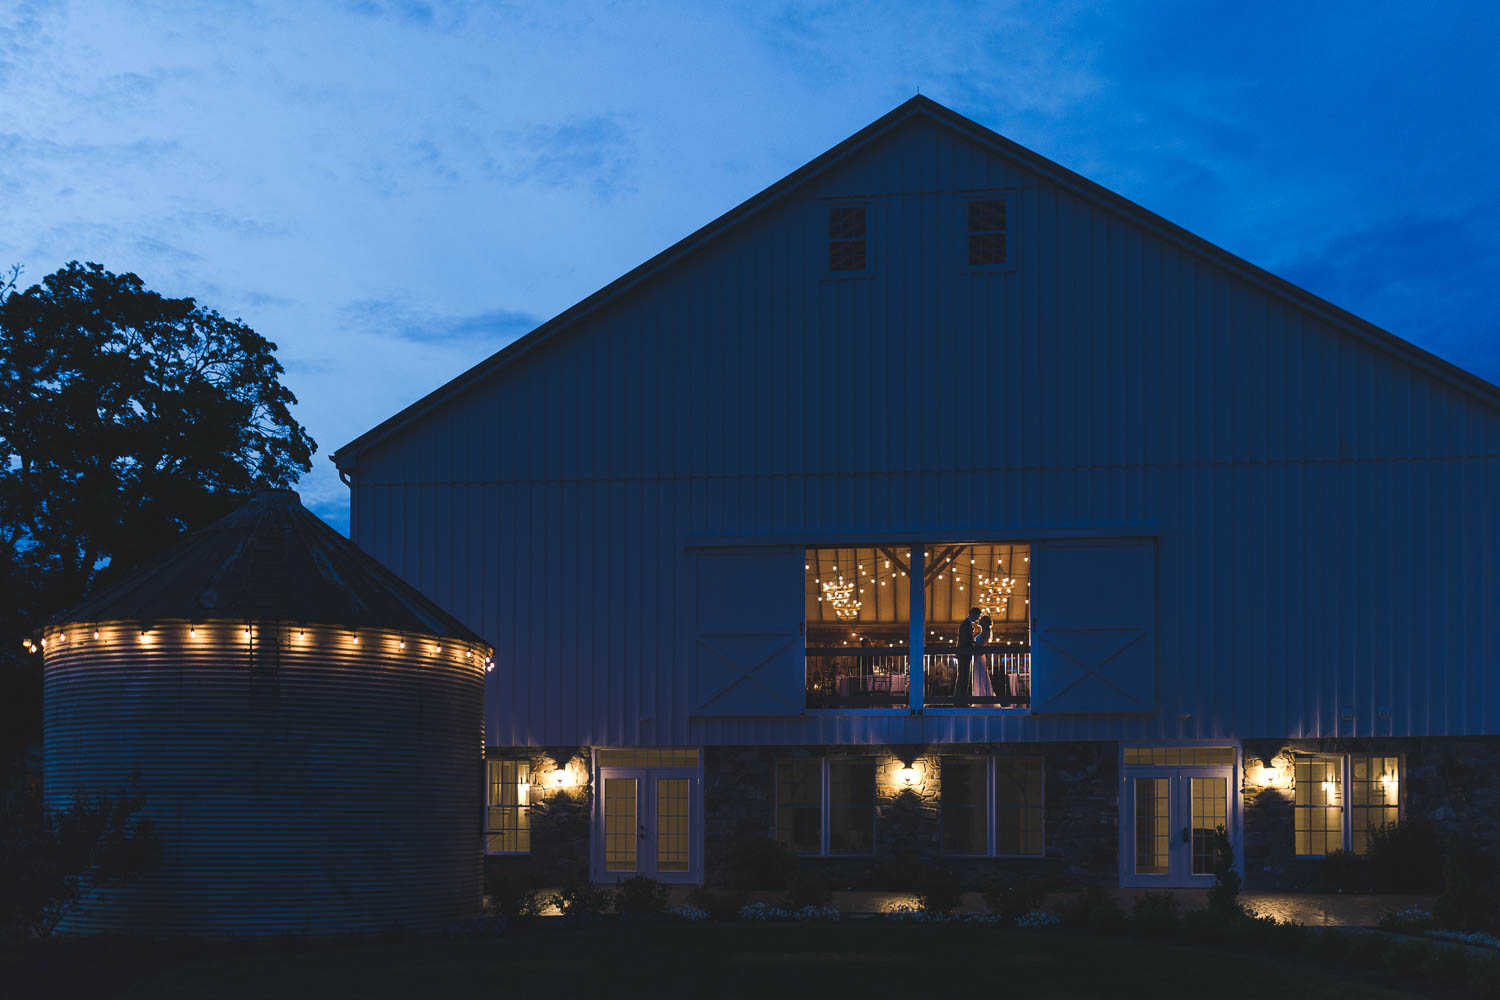 Night Time Wedding Photo from the Barn at Stoneybrooke